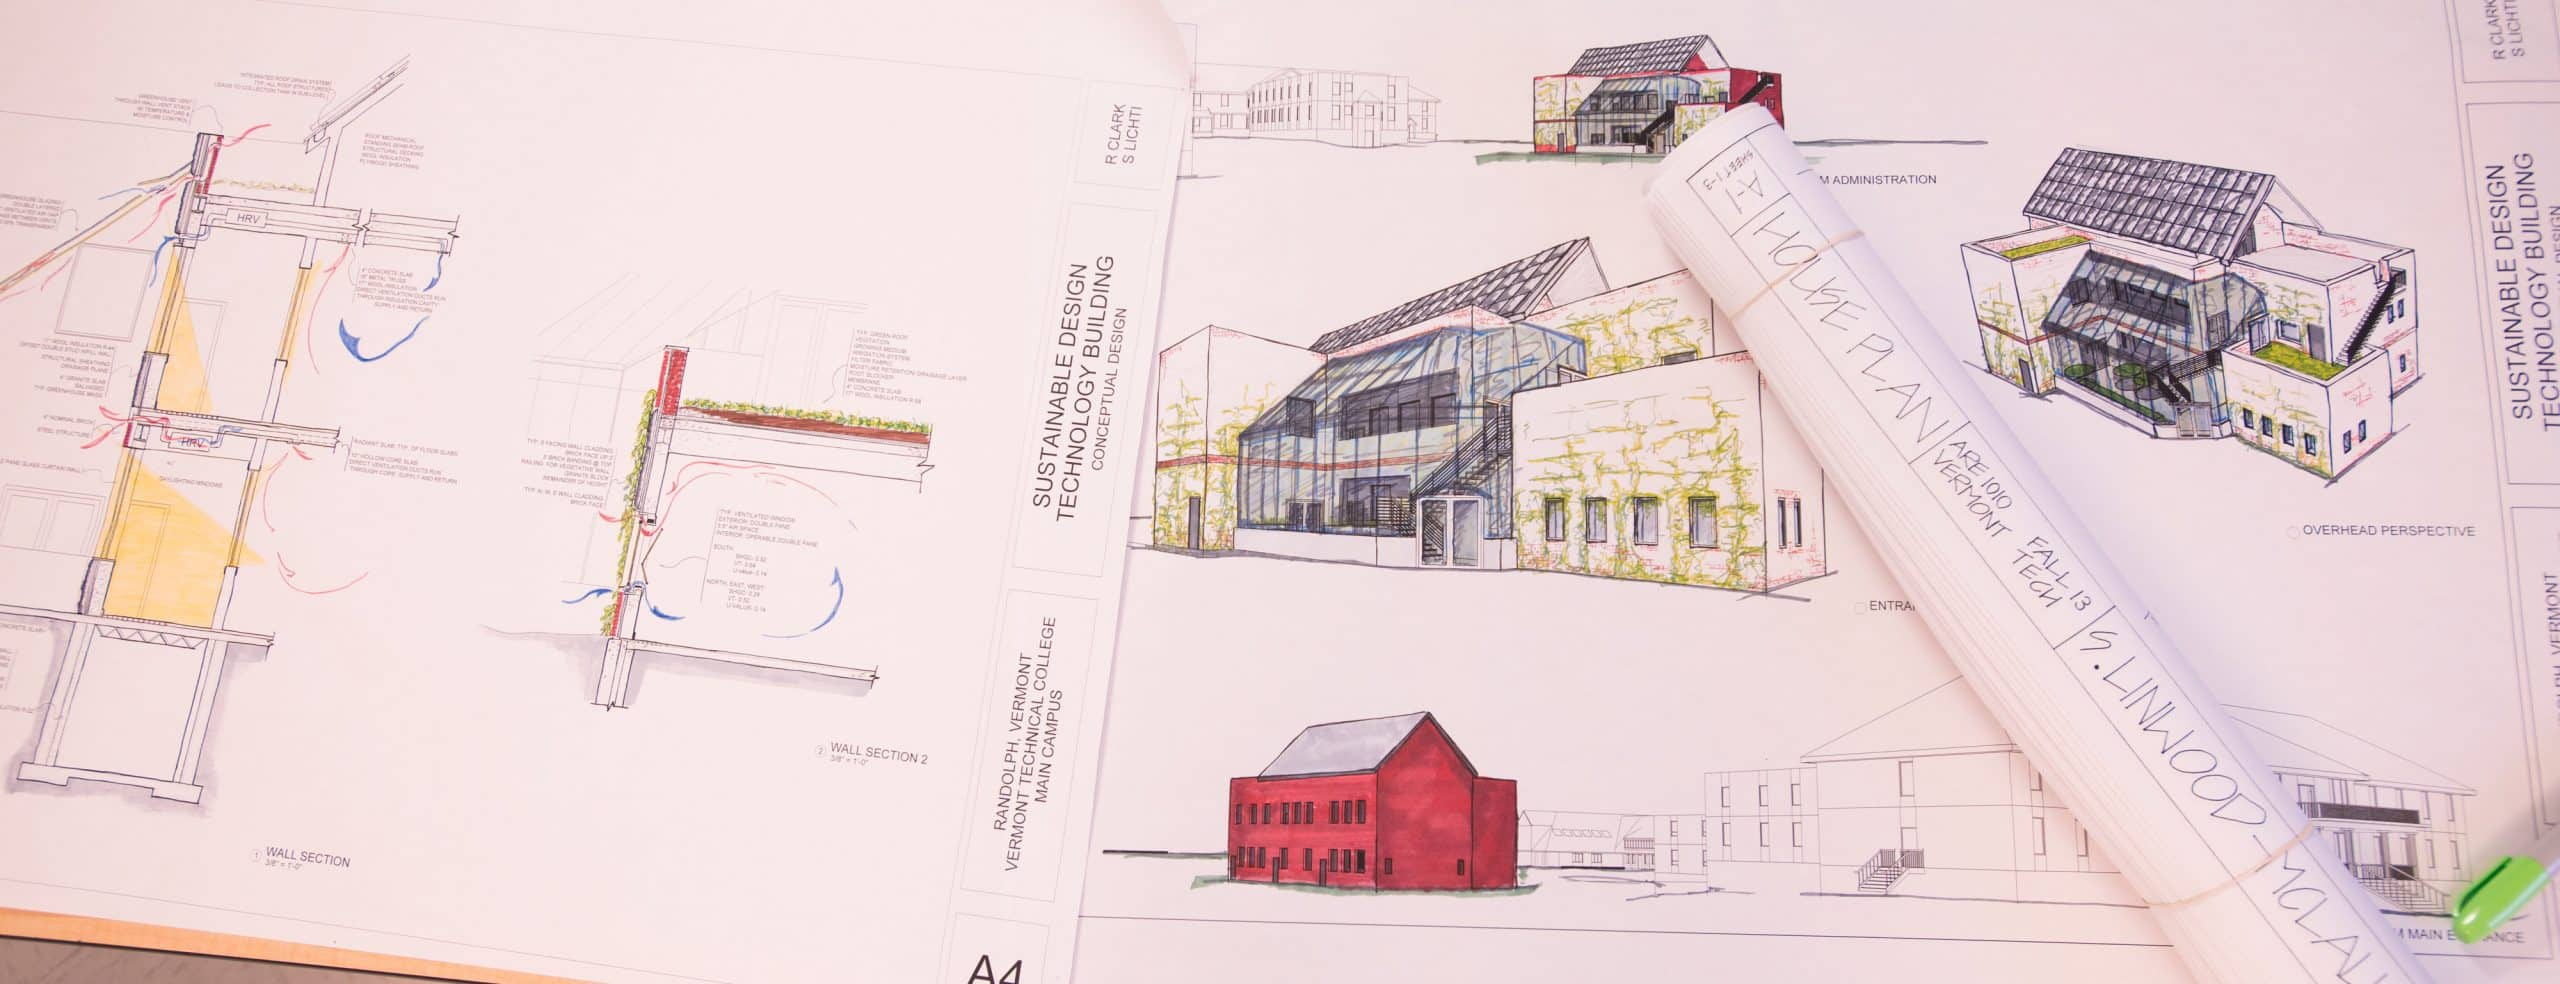 architectural engineering technology, architectural plans, drawing, coloring